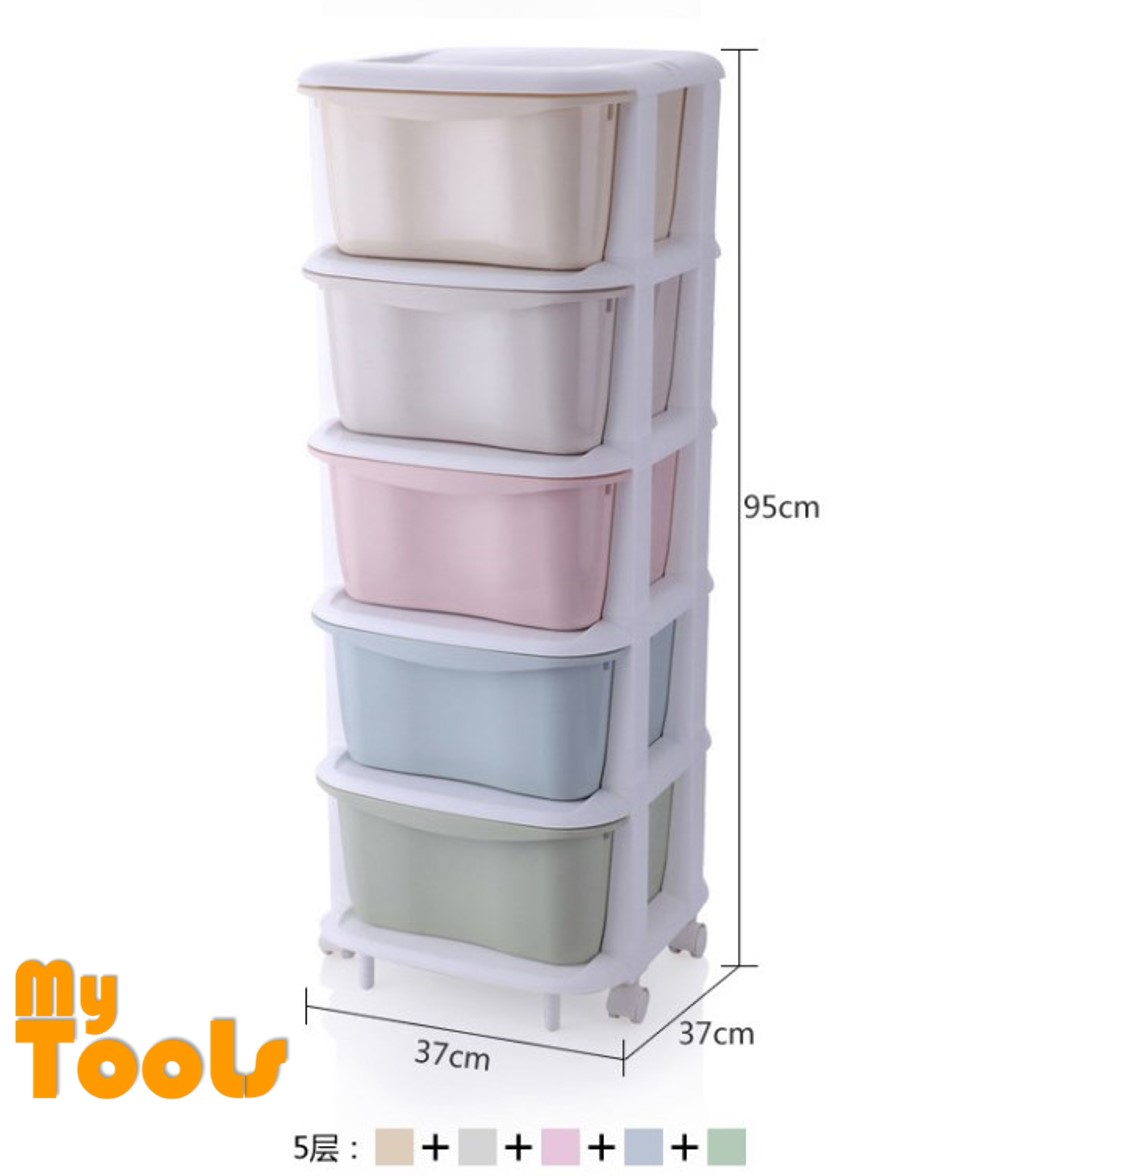 Mytools 5 Tier Drawers Cabinet Cubes DIY Wardrobe Rack With Wheels